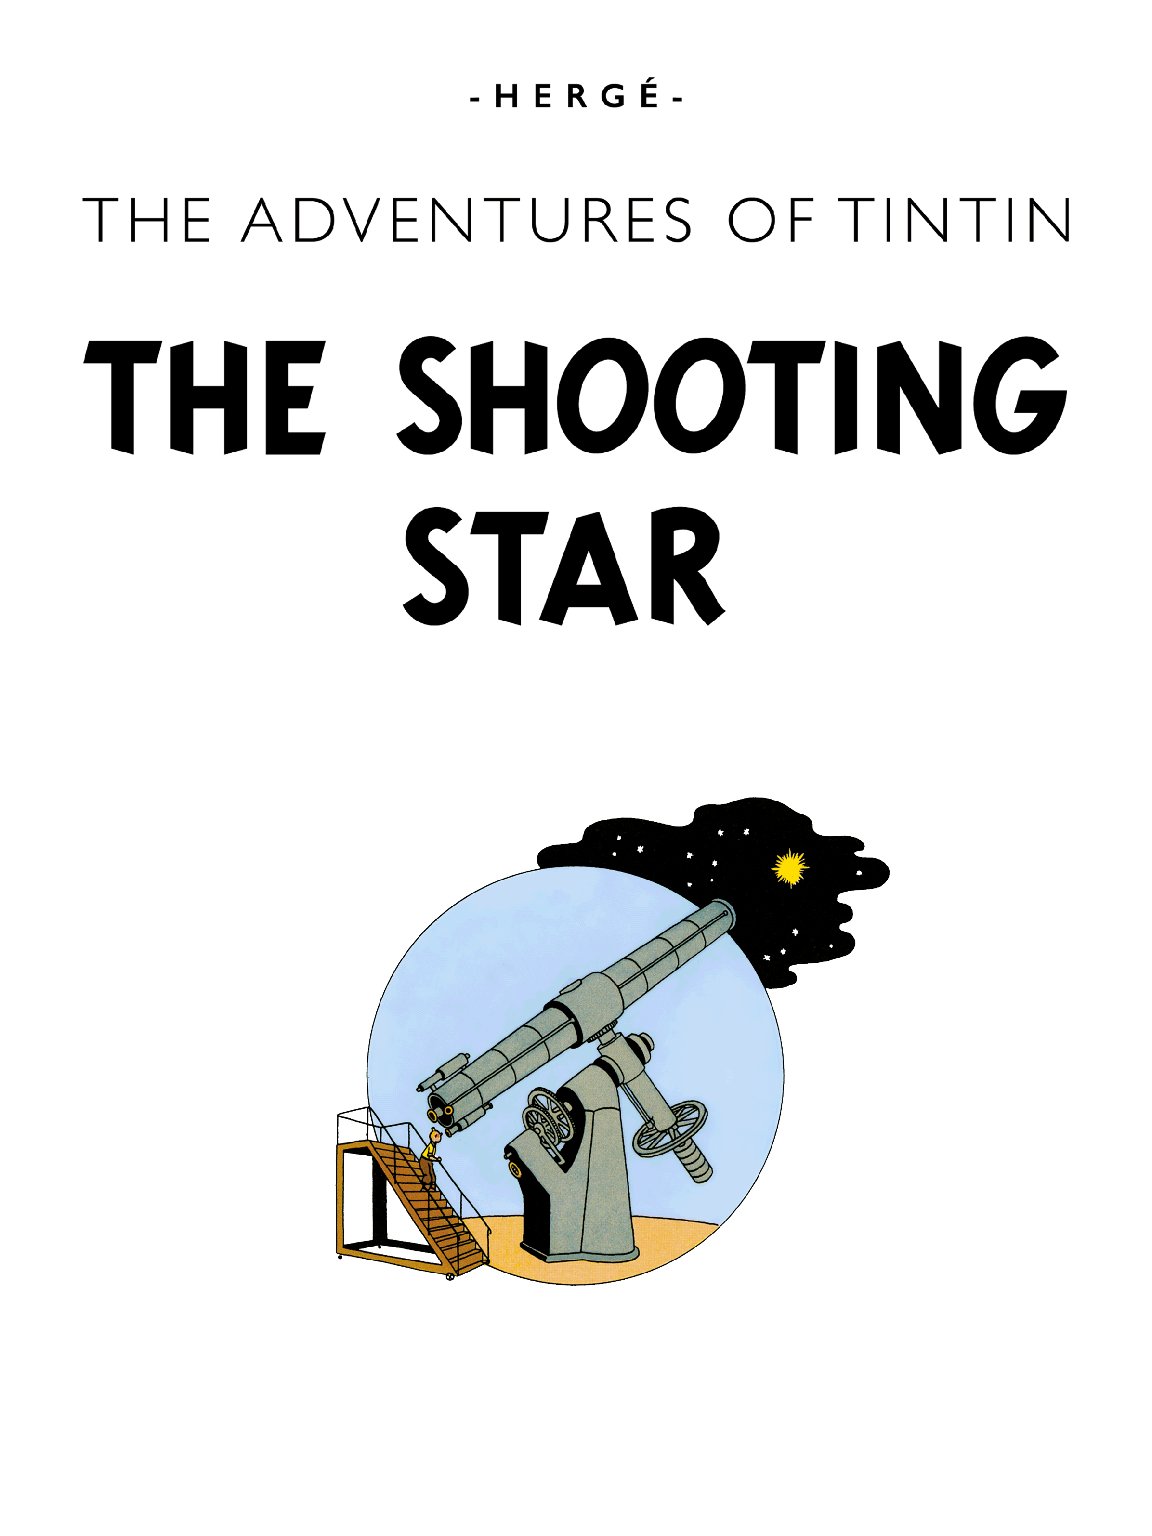 The Shooting Star - Title page